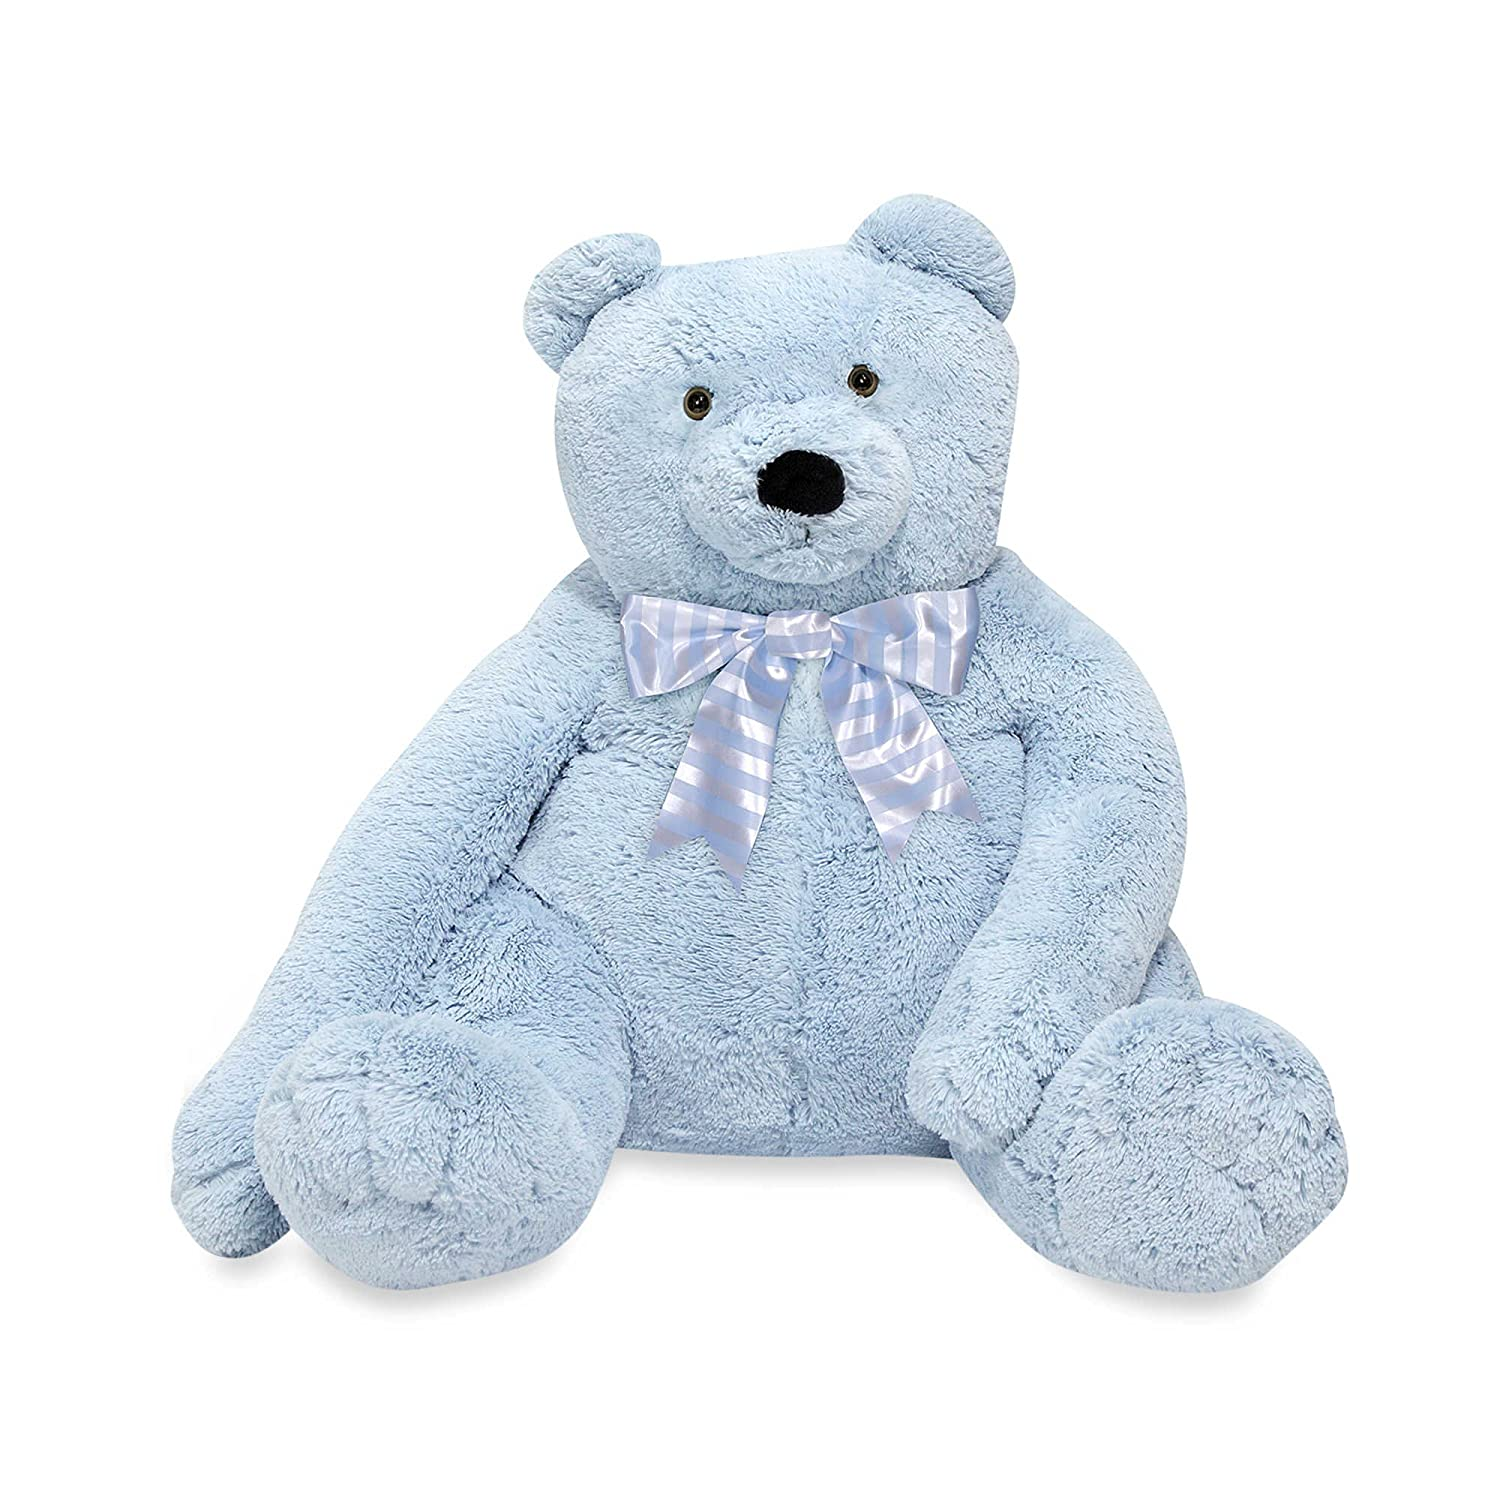 Amazon.com: Soft, Cuddly, Jumbo Blue Teddy Bear Plush with Extra Long arms: Toys & Games